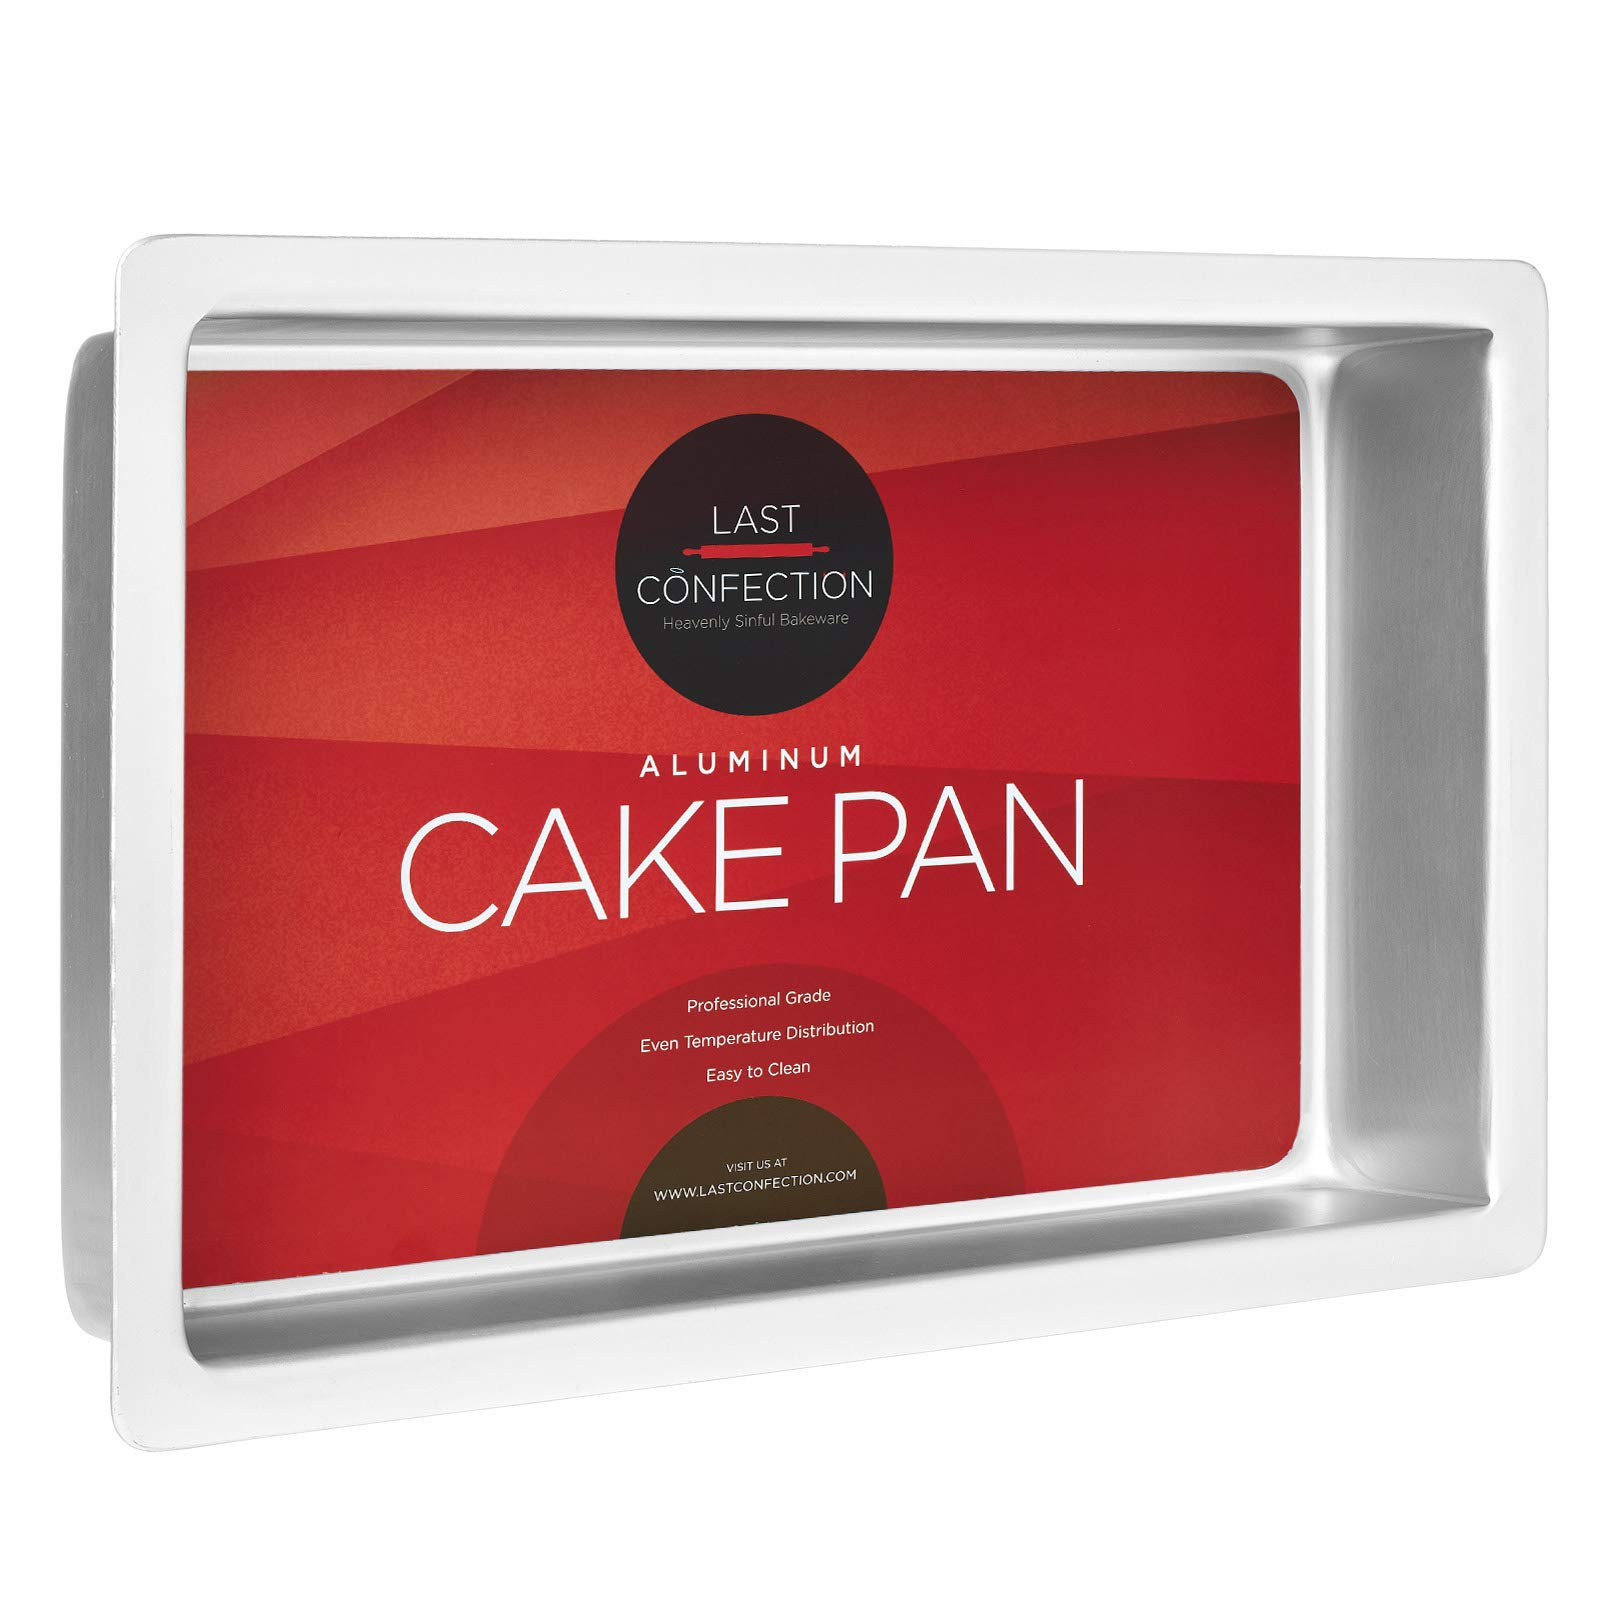 Last Confection 12'' x 18'' x 2'' Deep Rectangular Aluminum Cake Pan - Professional Bakeware